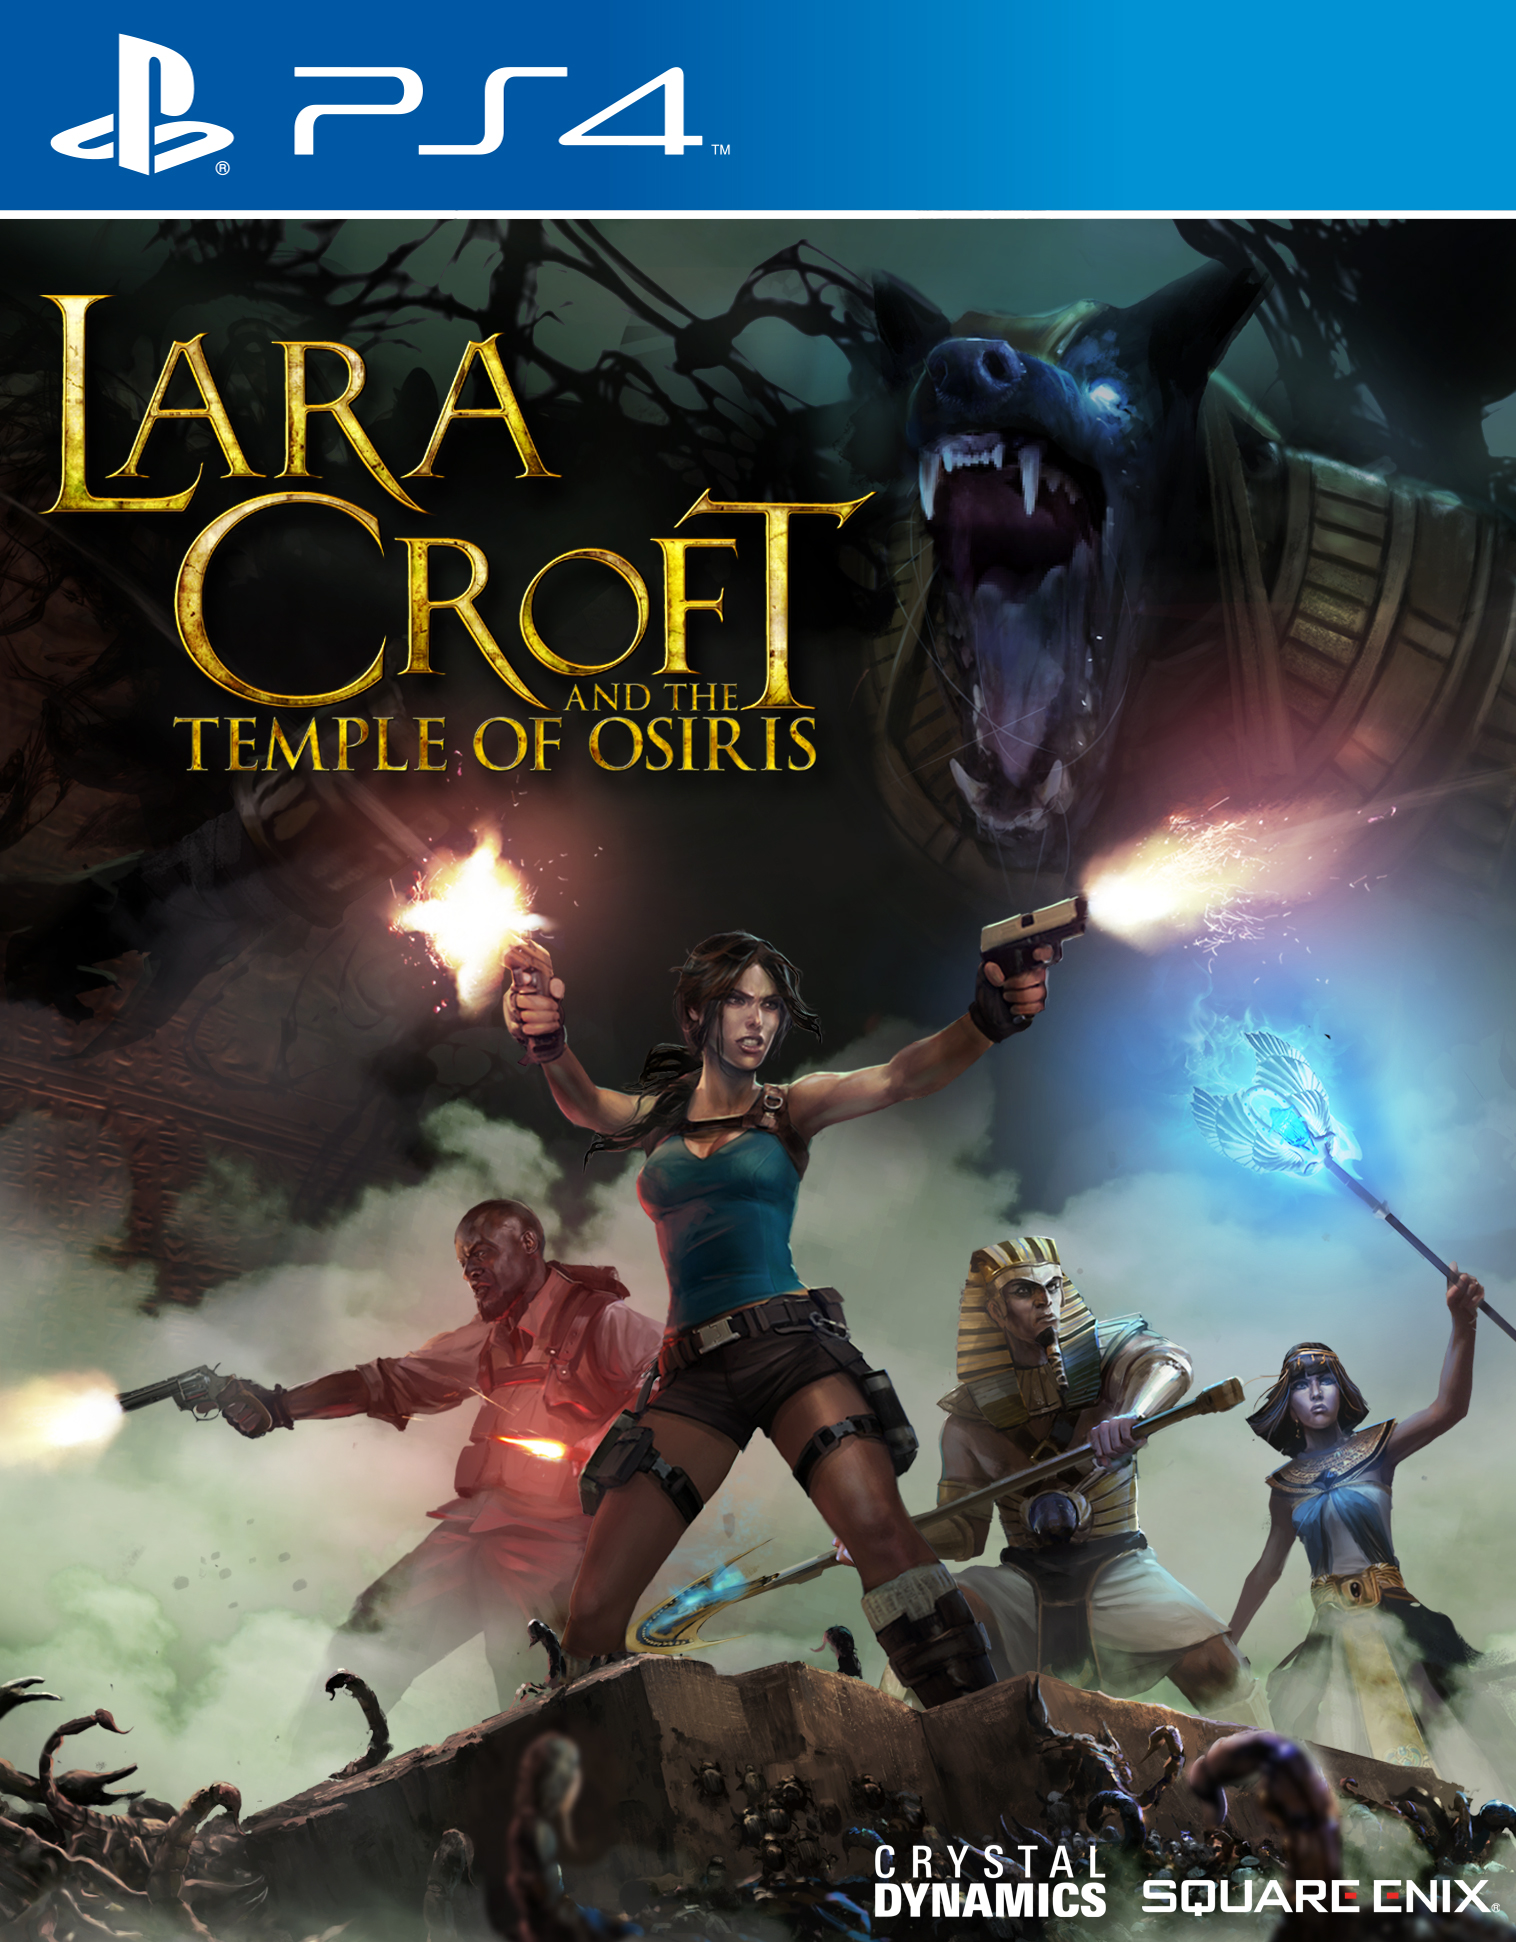 Lara_Croft_Temple_of_Osiris_Packshot_PS4_1402335522